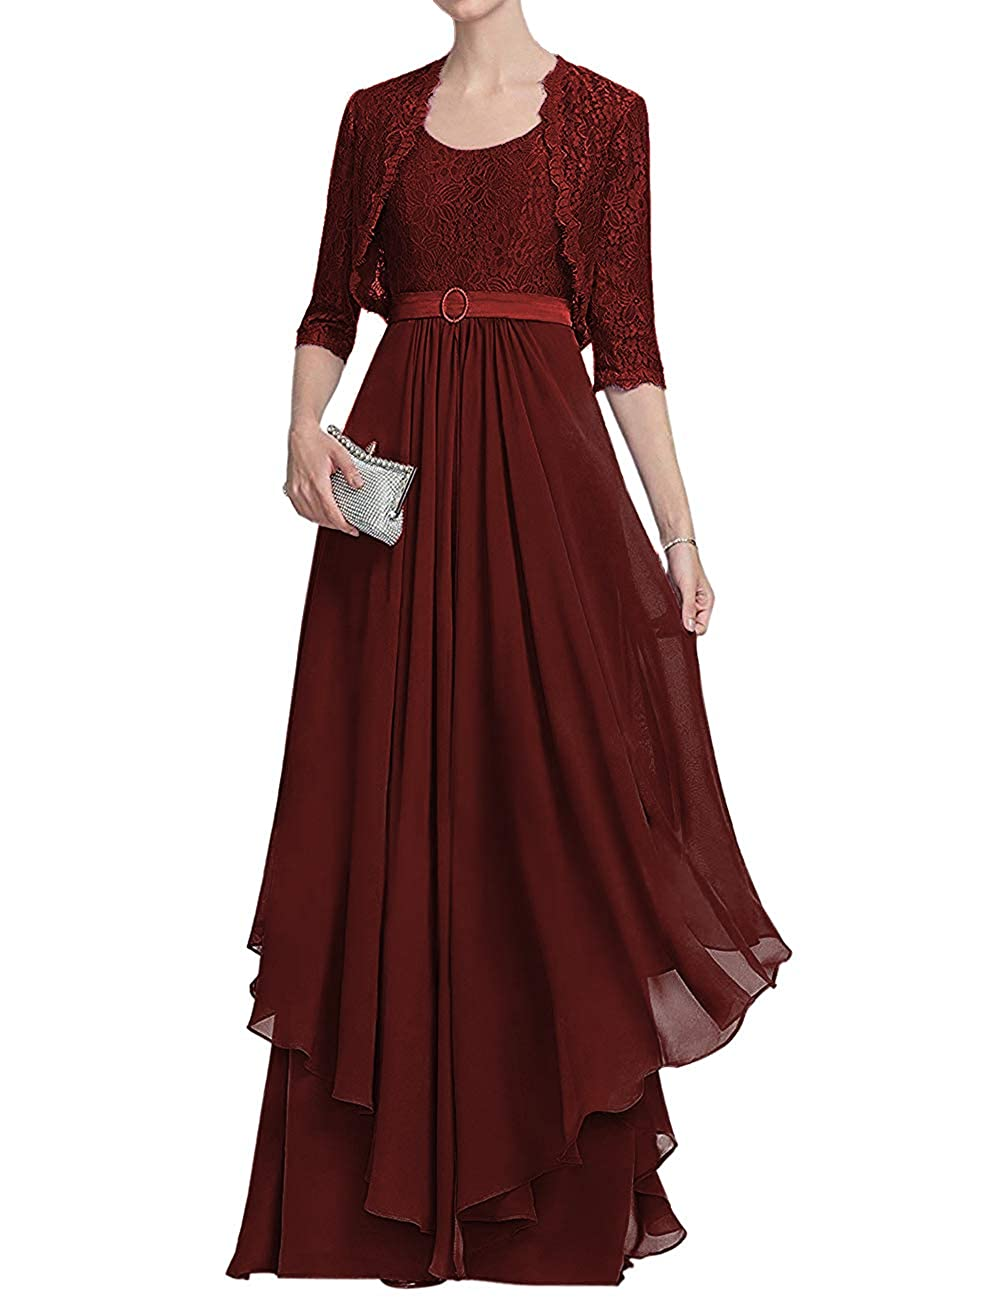 Dark Burgundy H.S.D Mother of The Bride Dresses Lace Formal Gowns Long Evening Dress Jacket Ruffles